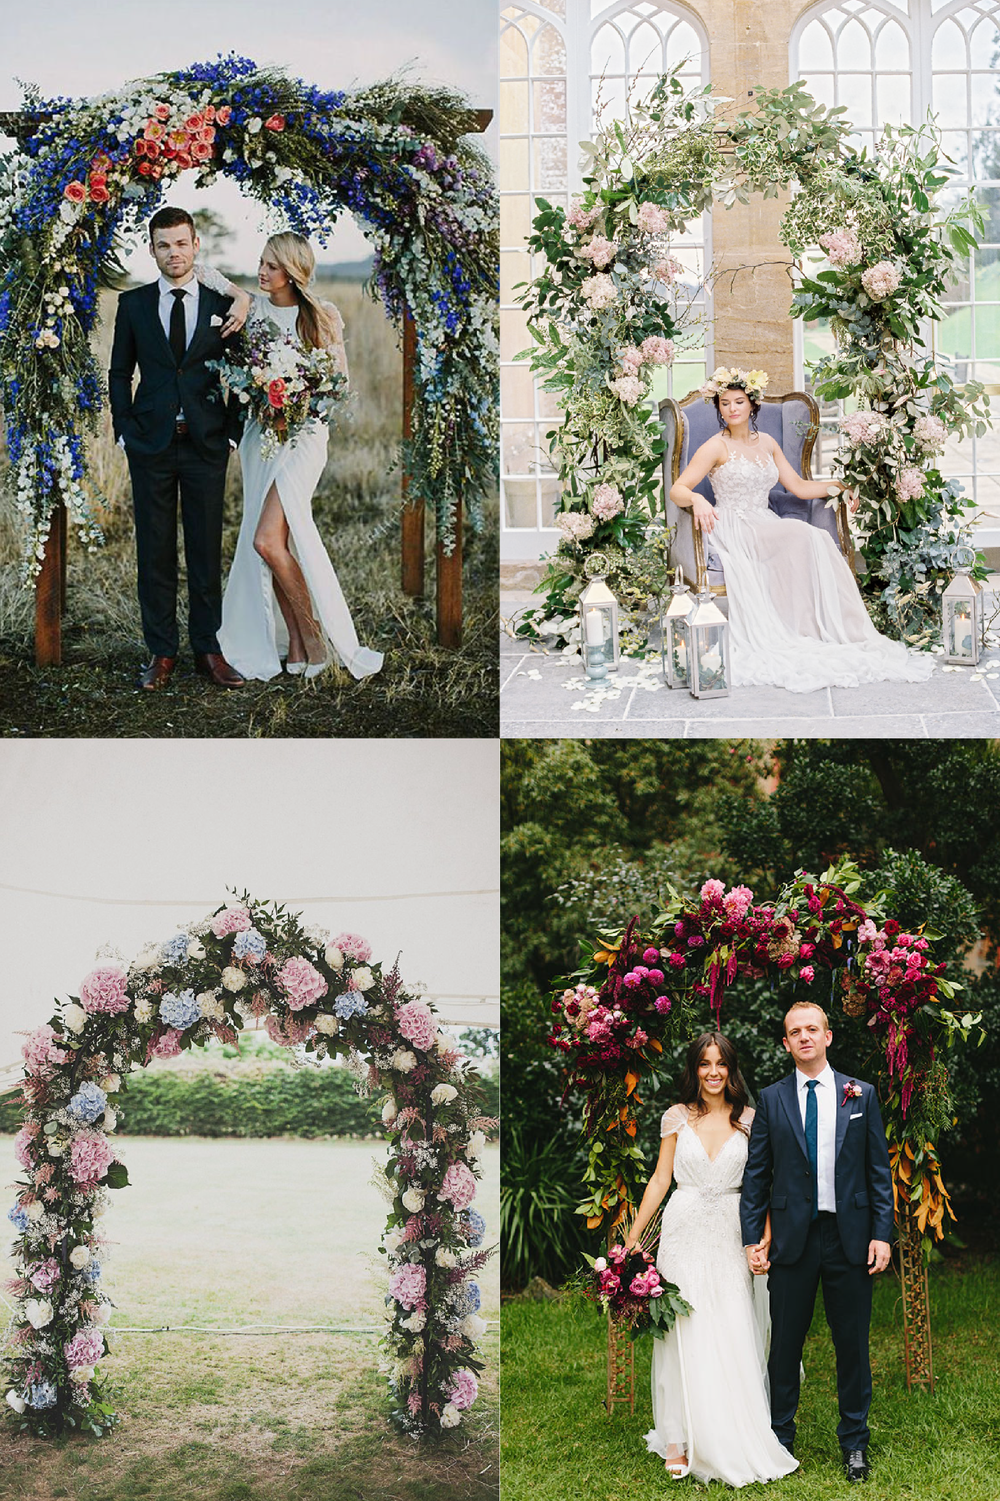 FROM CLOCKWISE, FROM TOP LEFT: Photo source  Pinterest , Floral Design by   Cottage Flowers   Photo by   Liz Baker Photography , Floral Design by   I Heart Flowers  Photo by  Jonathan Ong Photography , Floral Design by  Flowerworx Designer Florist  and Photo by  Anna Hardy .